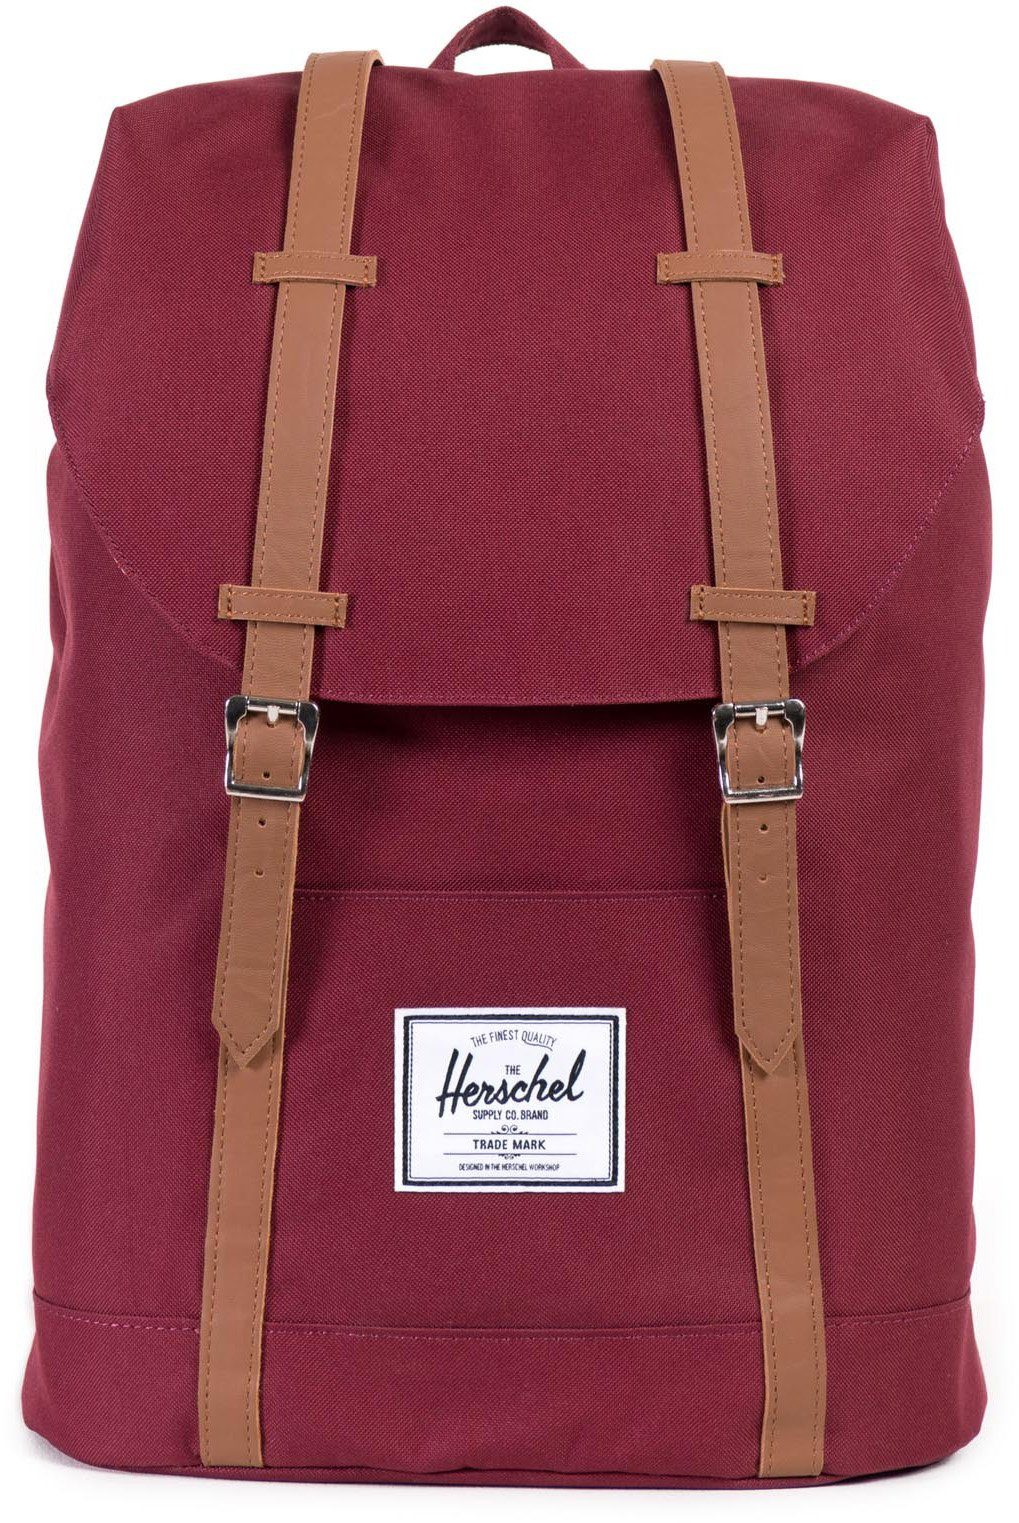 Herschel Rucksack, »Retreat Backpack, Windsor Wine«